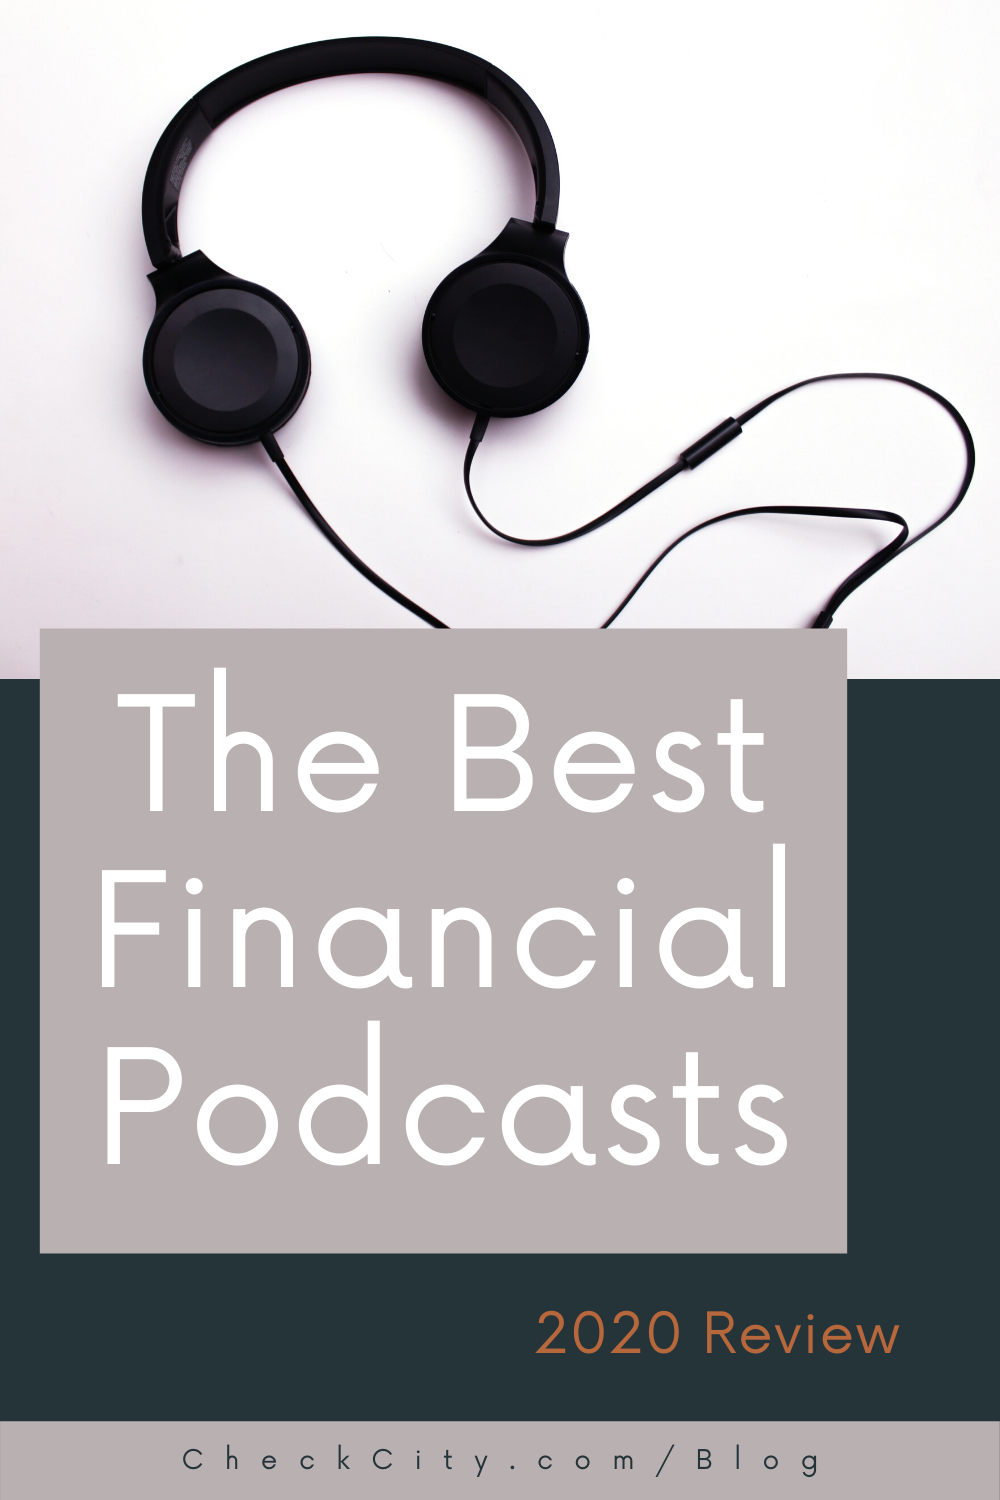 2020 Review The Best Financial Podcasts Financial Podcasts Review In 2020 Financial Podcasts Best